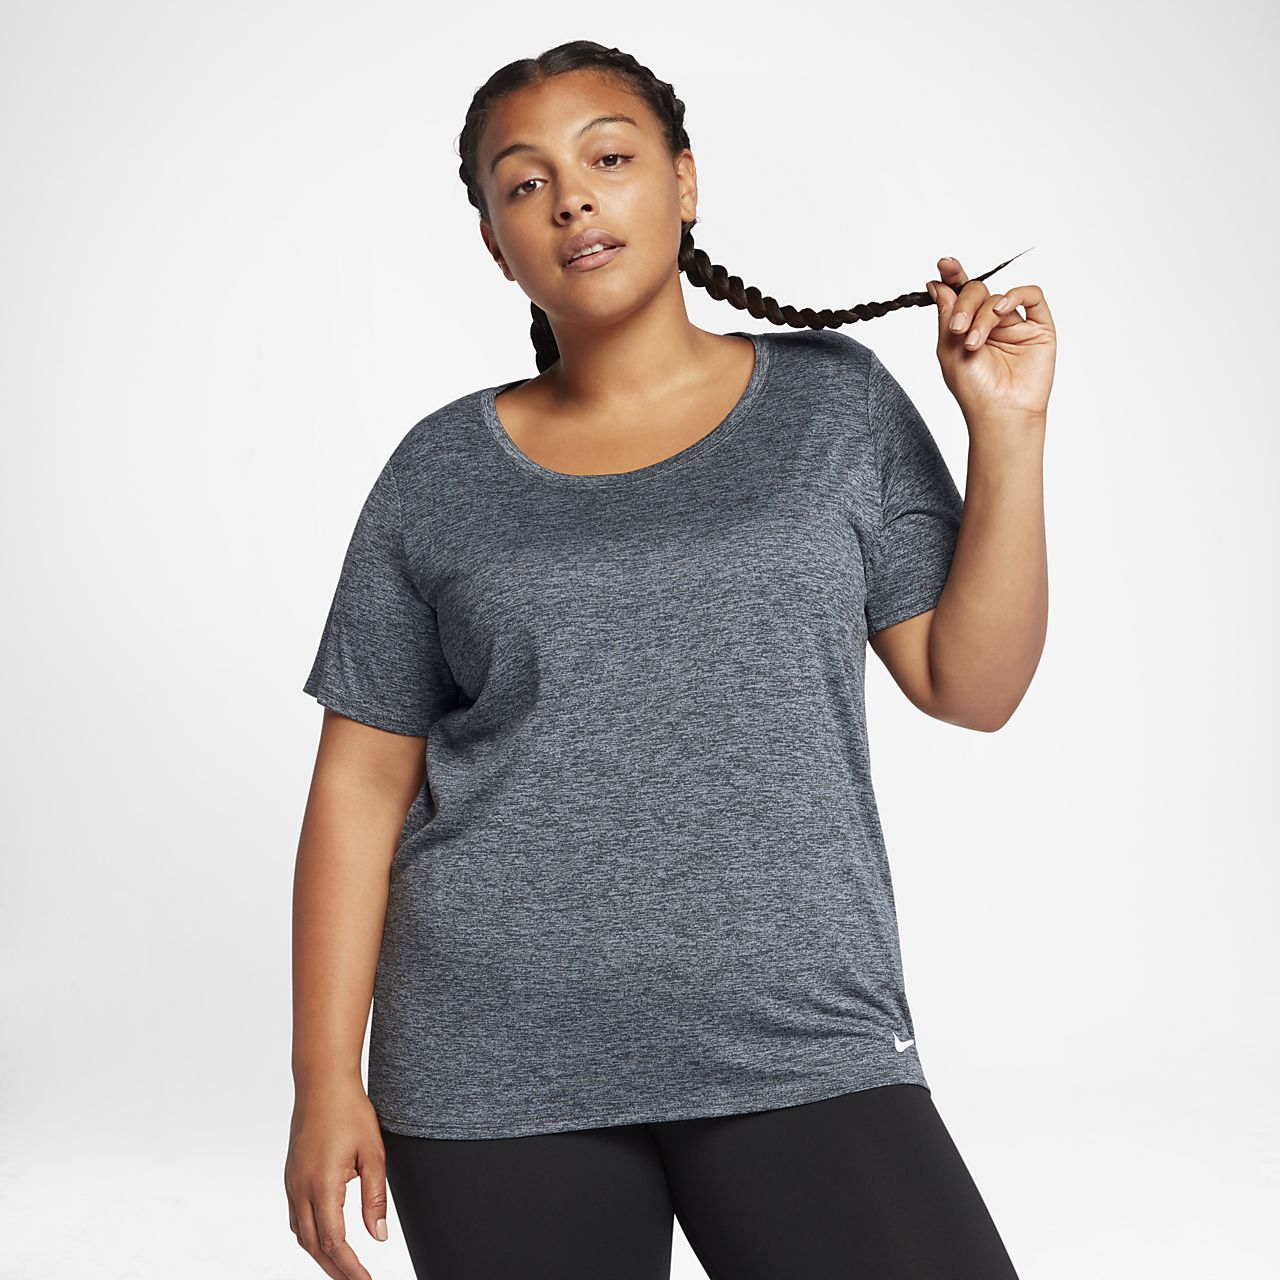 Nike Dri-FIT Legend (Plus Size) Women's Short Sleeve Training Top